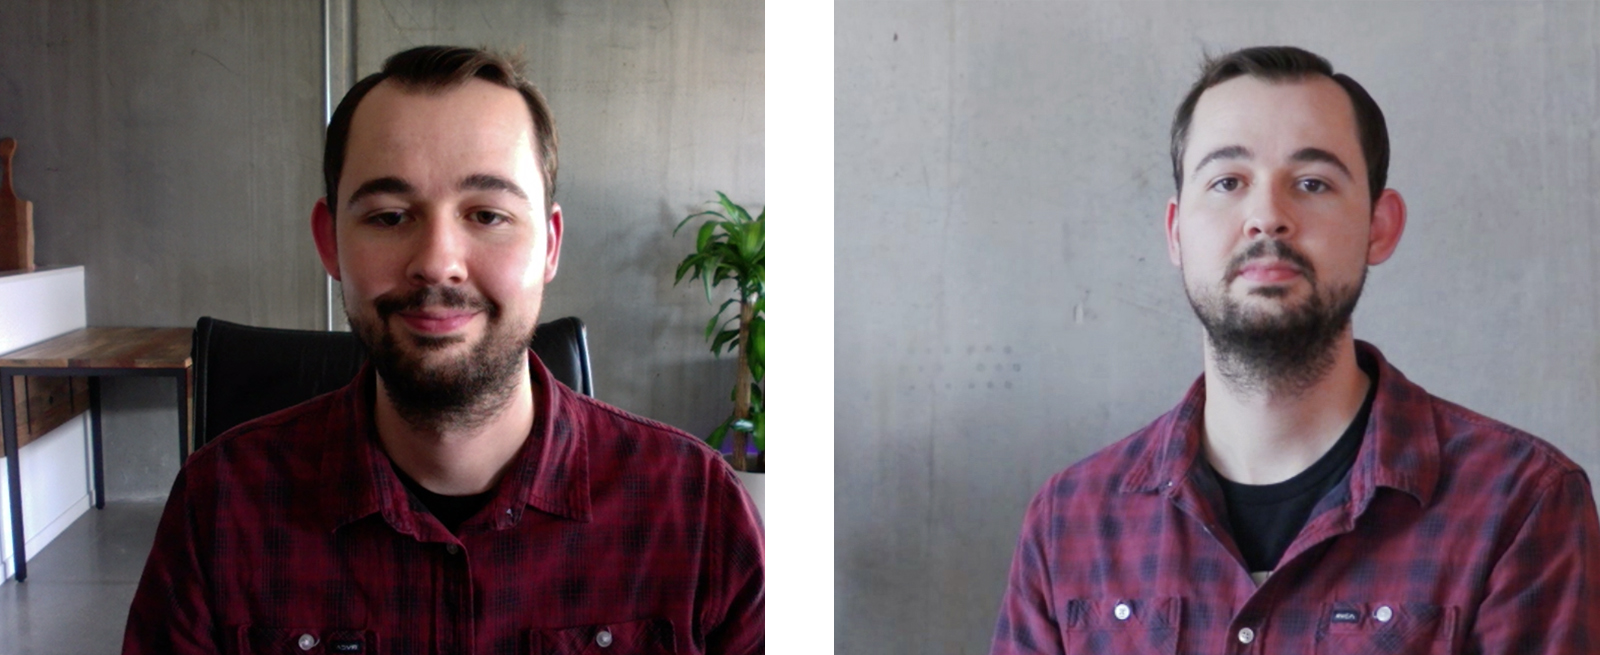 Comparison photos of man in front of grey background.